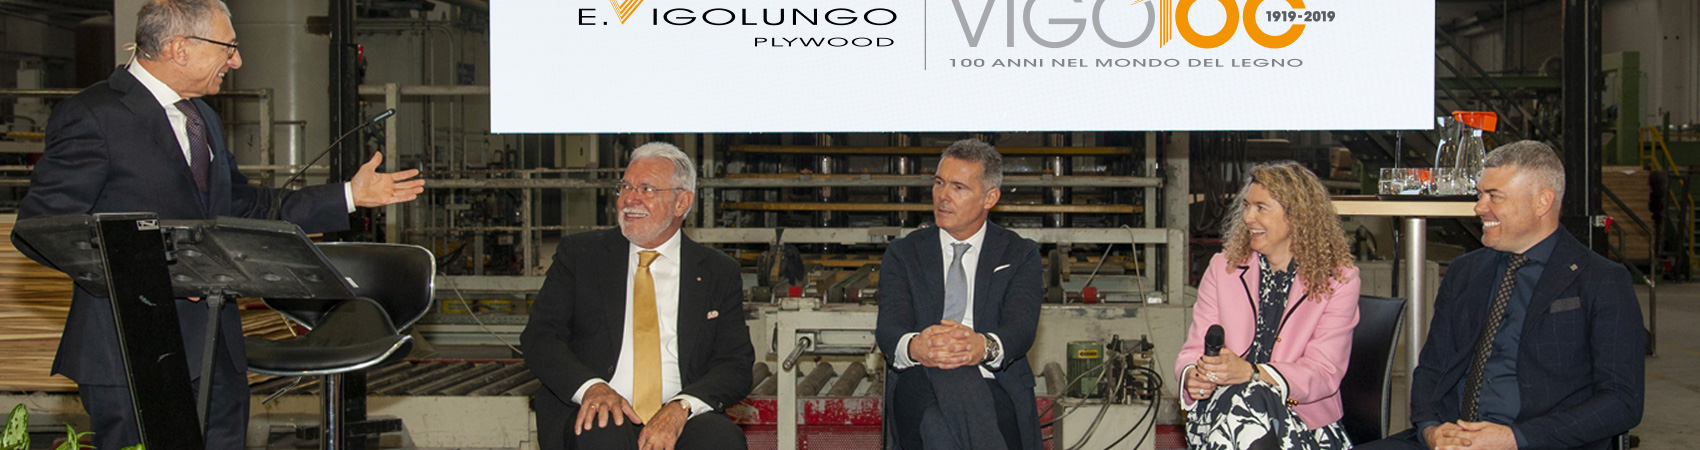 Vigolungo, 100 years of activity